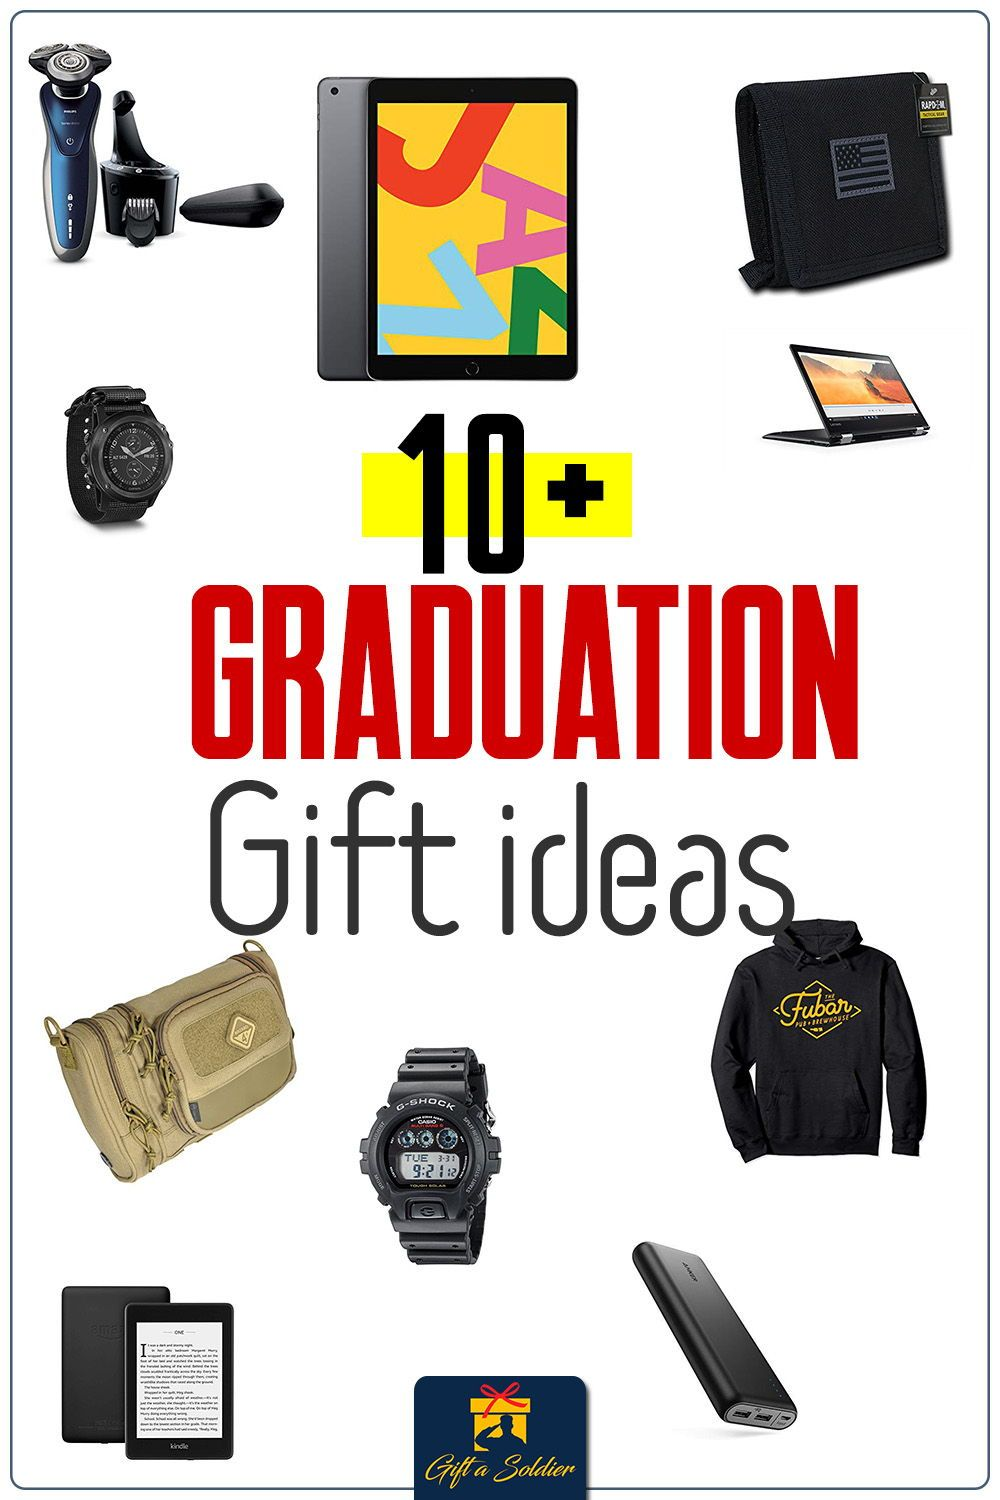 Graduation gifts archives gift a soldier in 2020 army